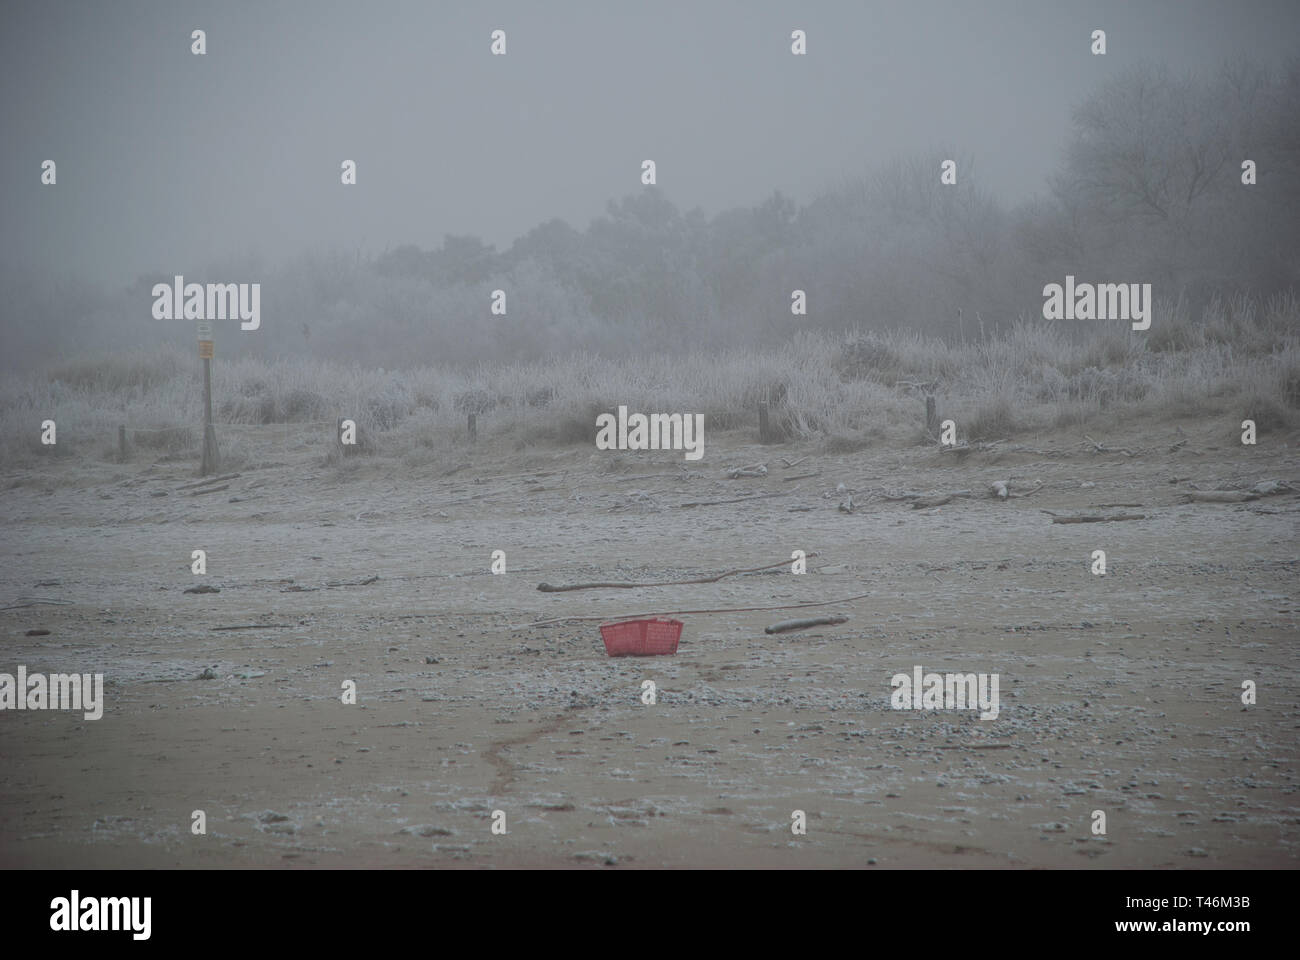 Icy forest enveloped by fog, view of the forest from the beach in winter season - Stock Image